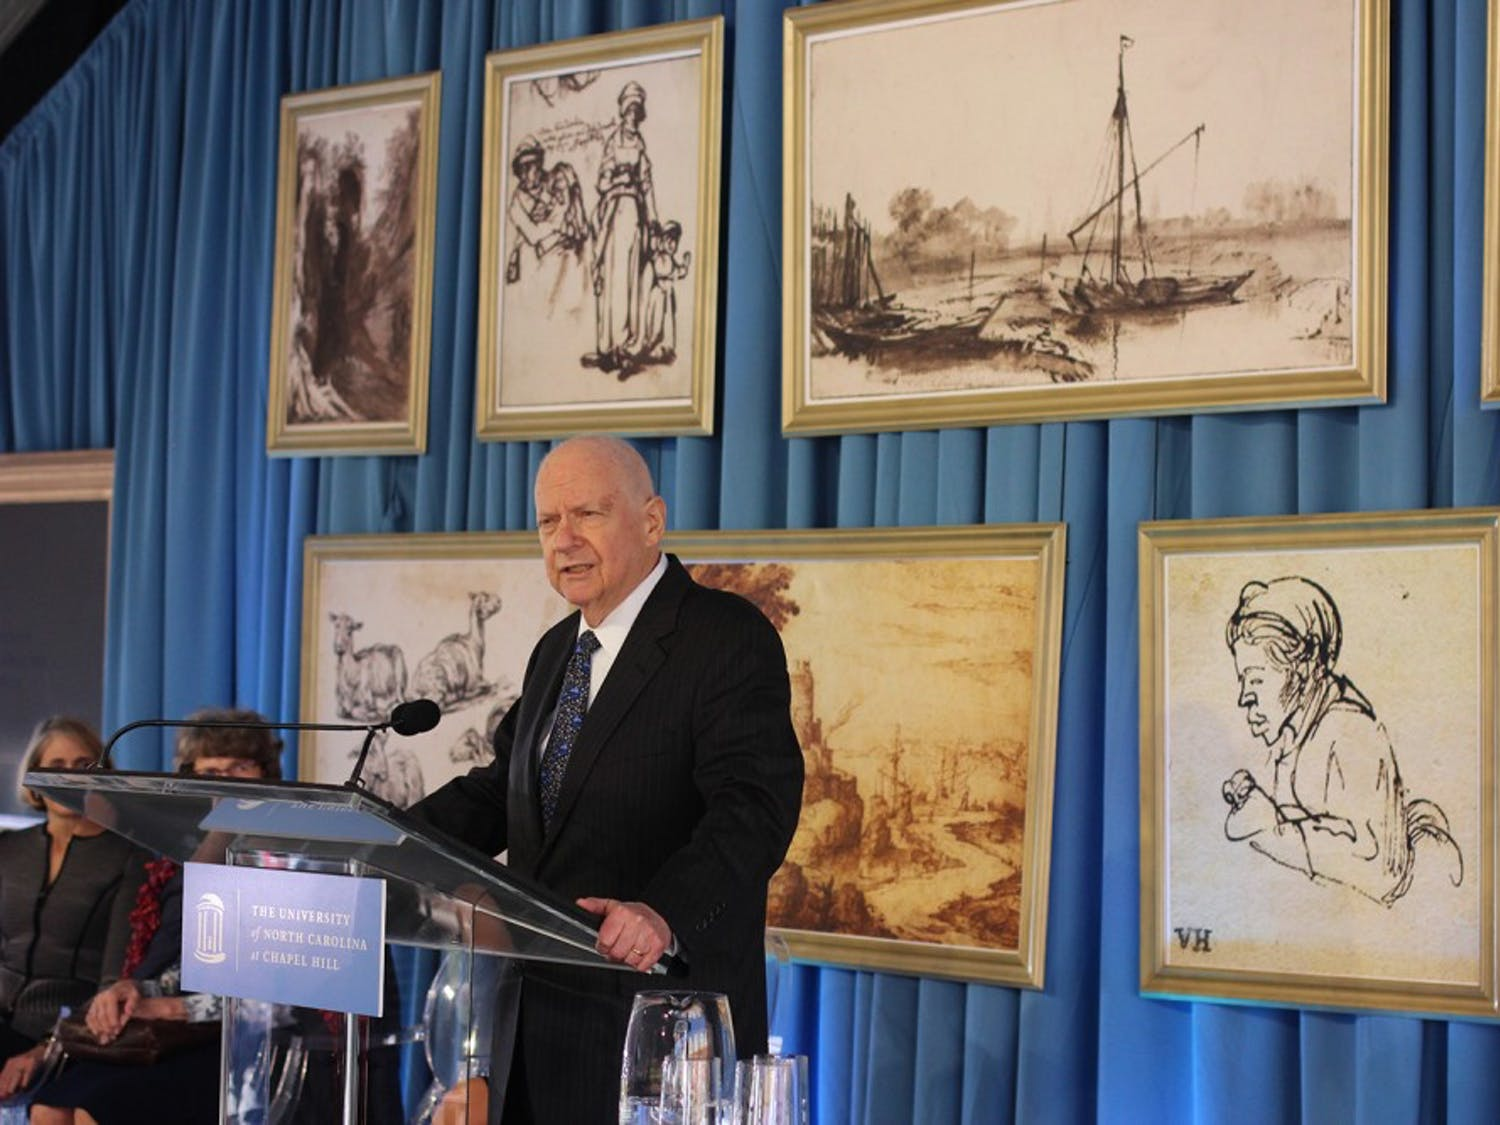 Sheldon Peck speaks at the donation announcement of various pieces of artwork to the Ackland Art Museum. Peck and his wife were the donors of the the collection, valued at $25 million and containing some of Rembrandt's most famous pieces.